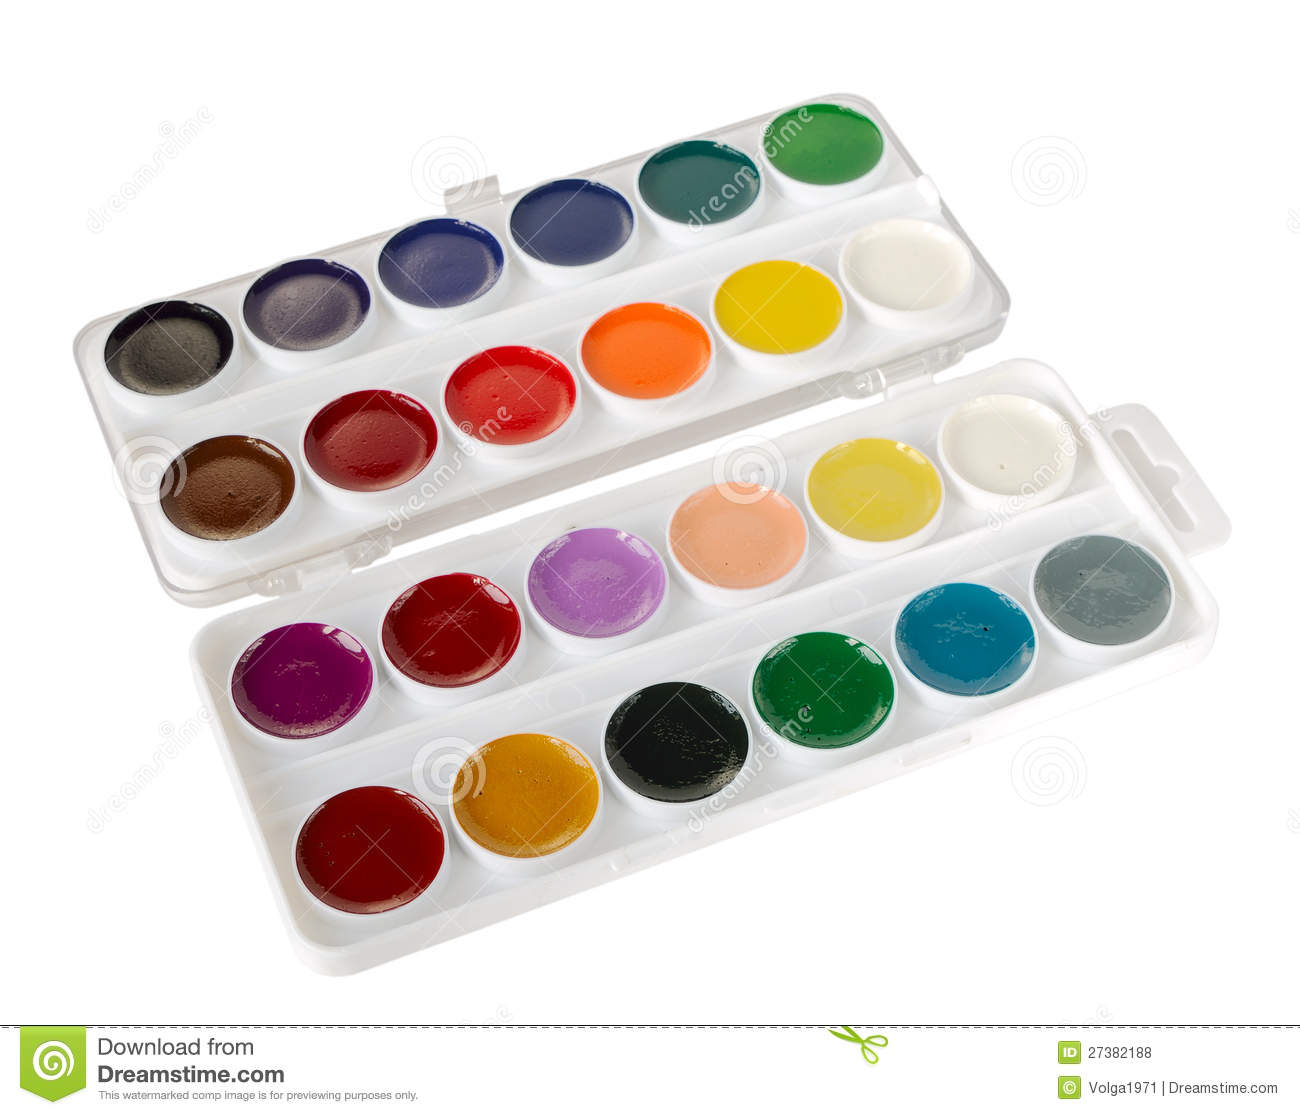 Watercolor Paints Royalty Free Stock Photos Image 27382188